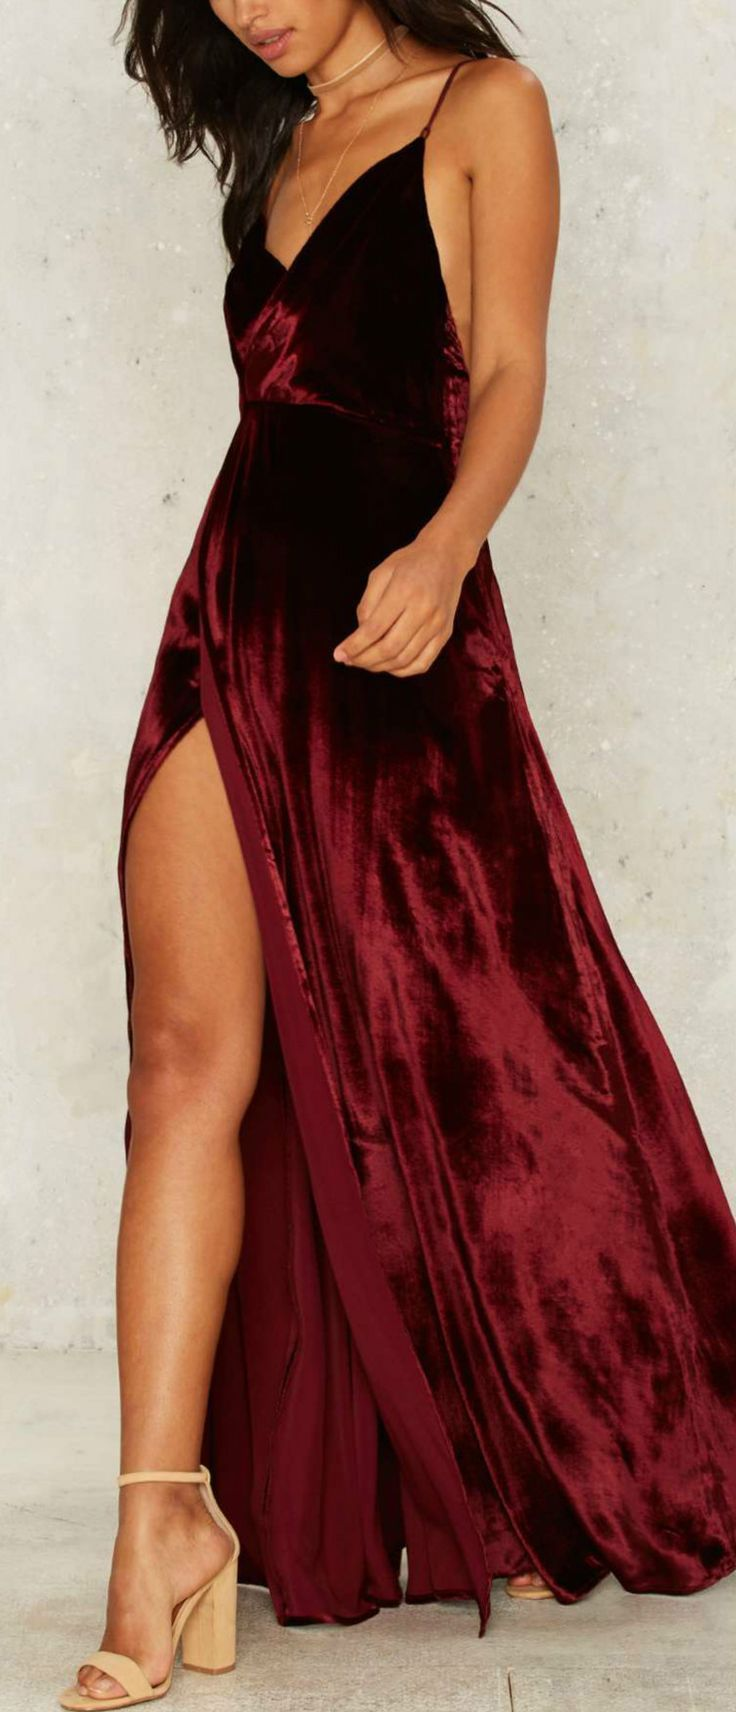 V neck backless velvet prom dress outfit pinterest dresses